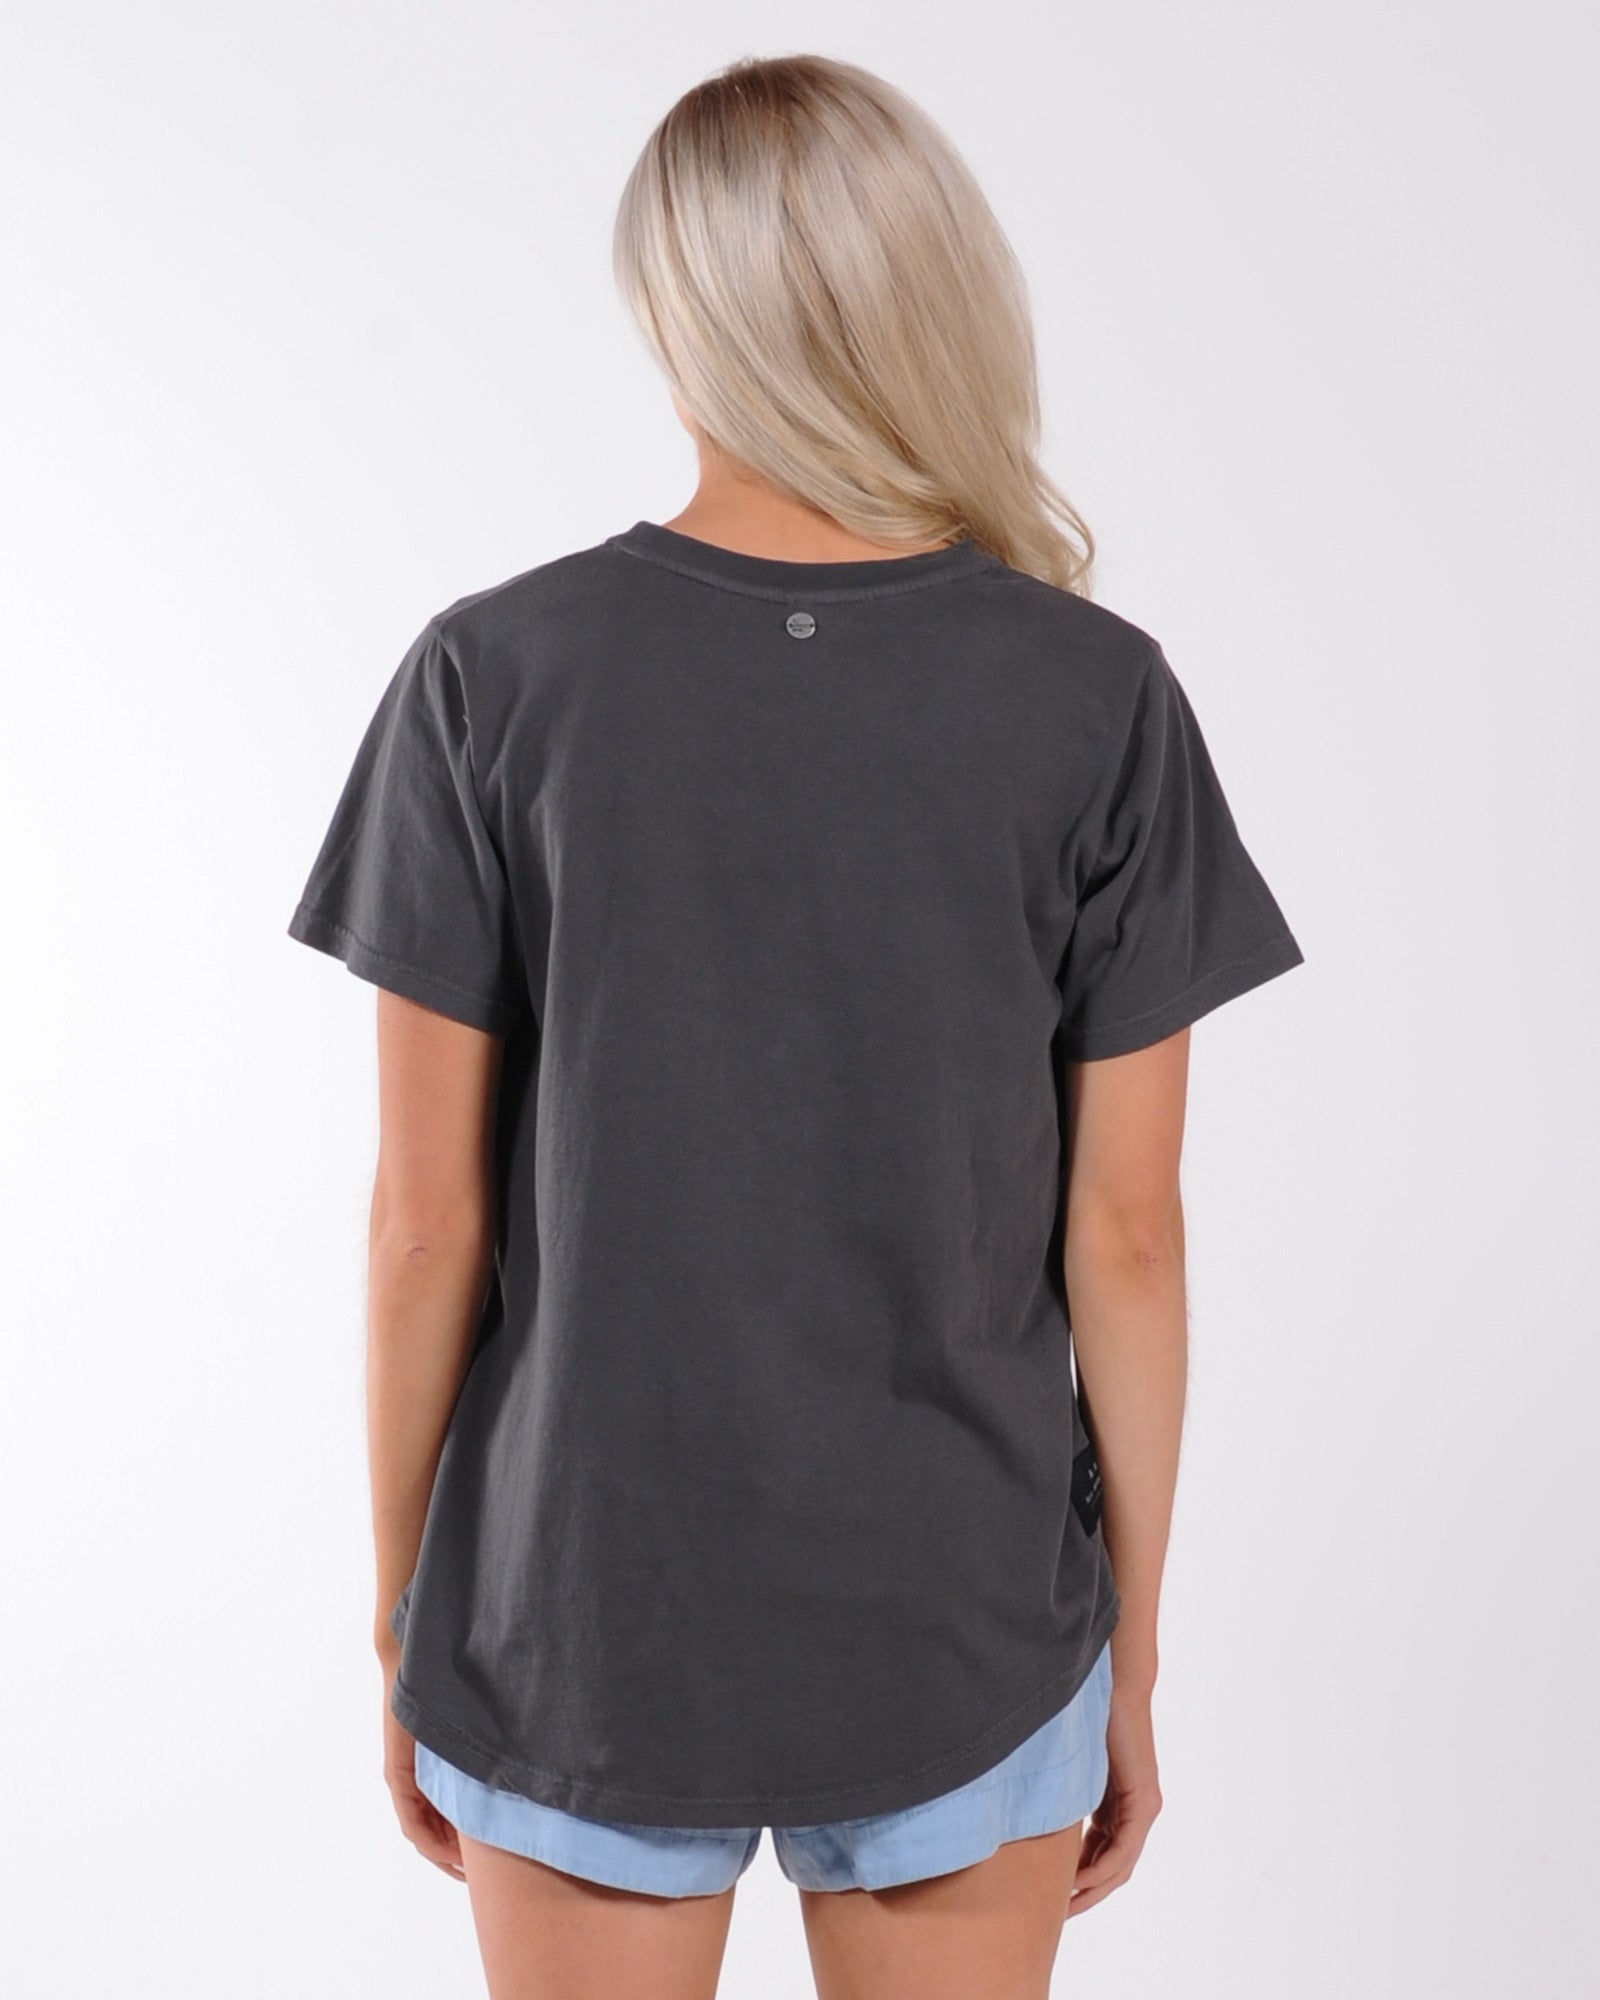 All About Eve The Good Life Tee - Charcoal